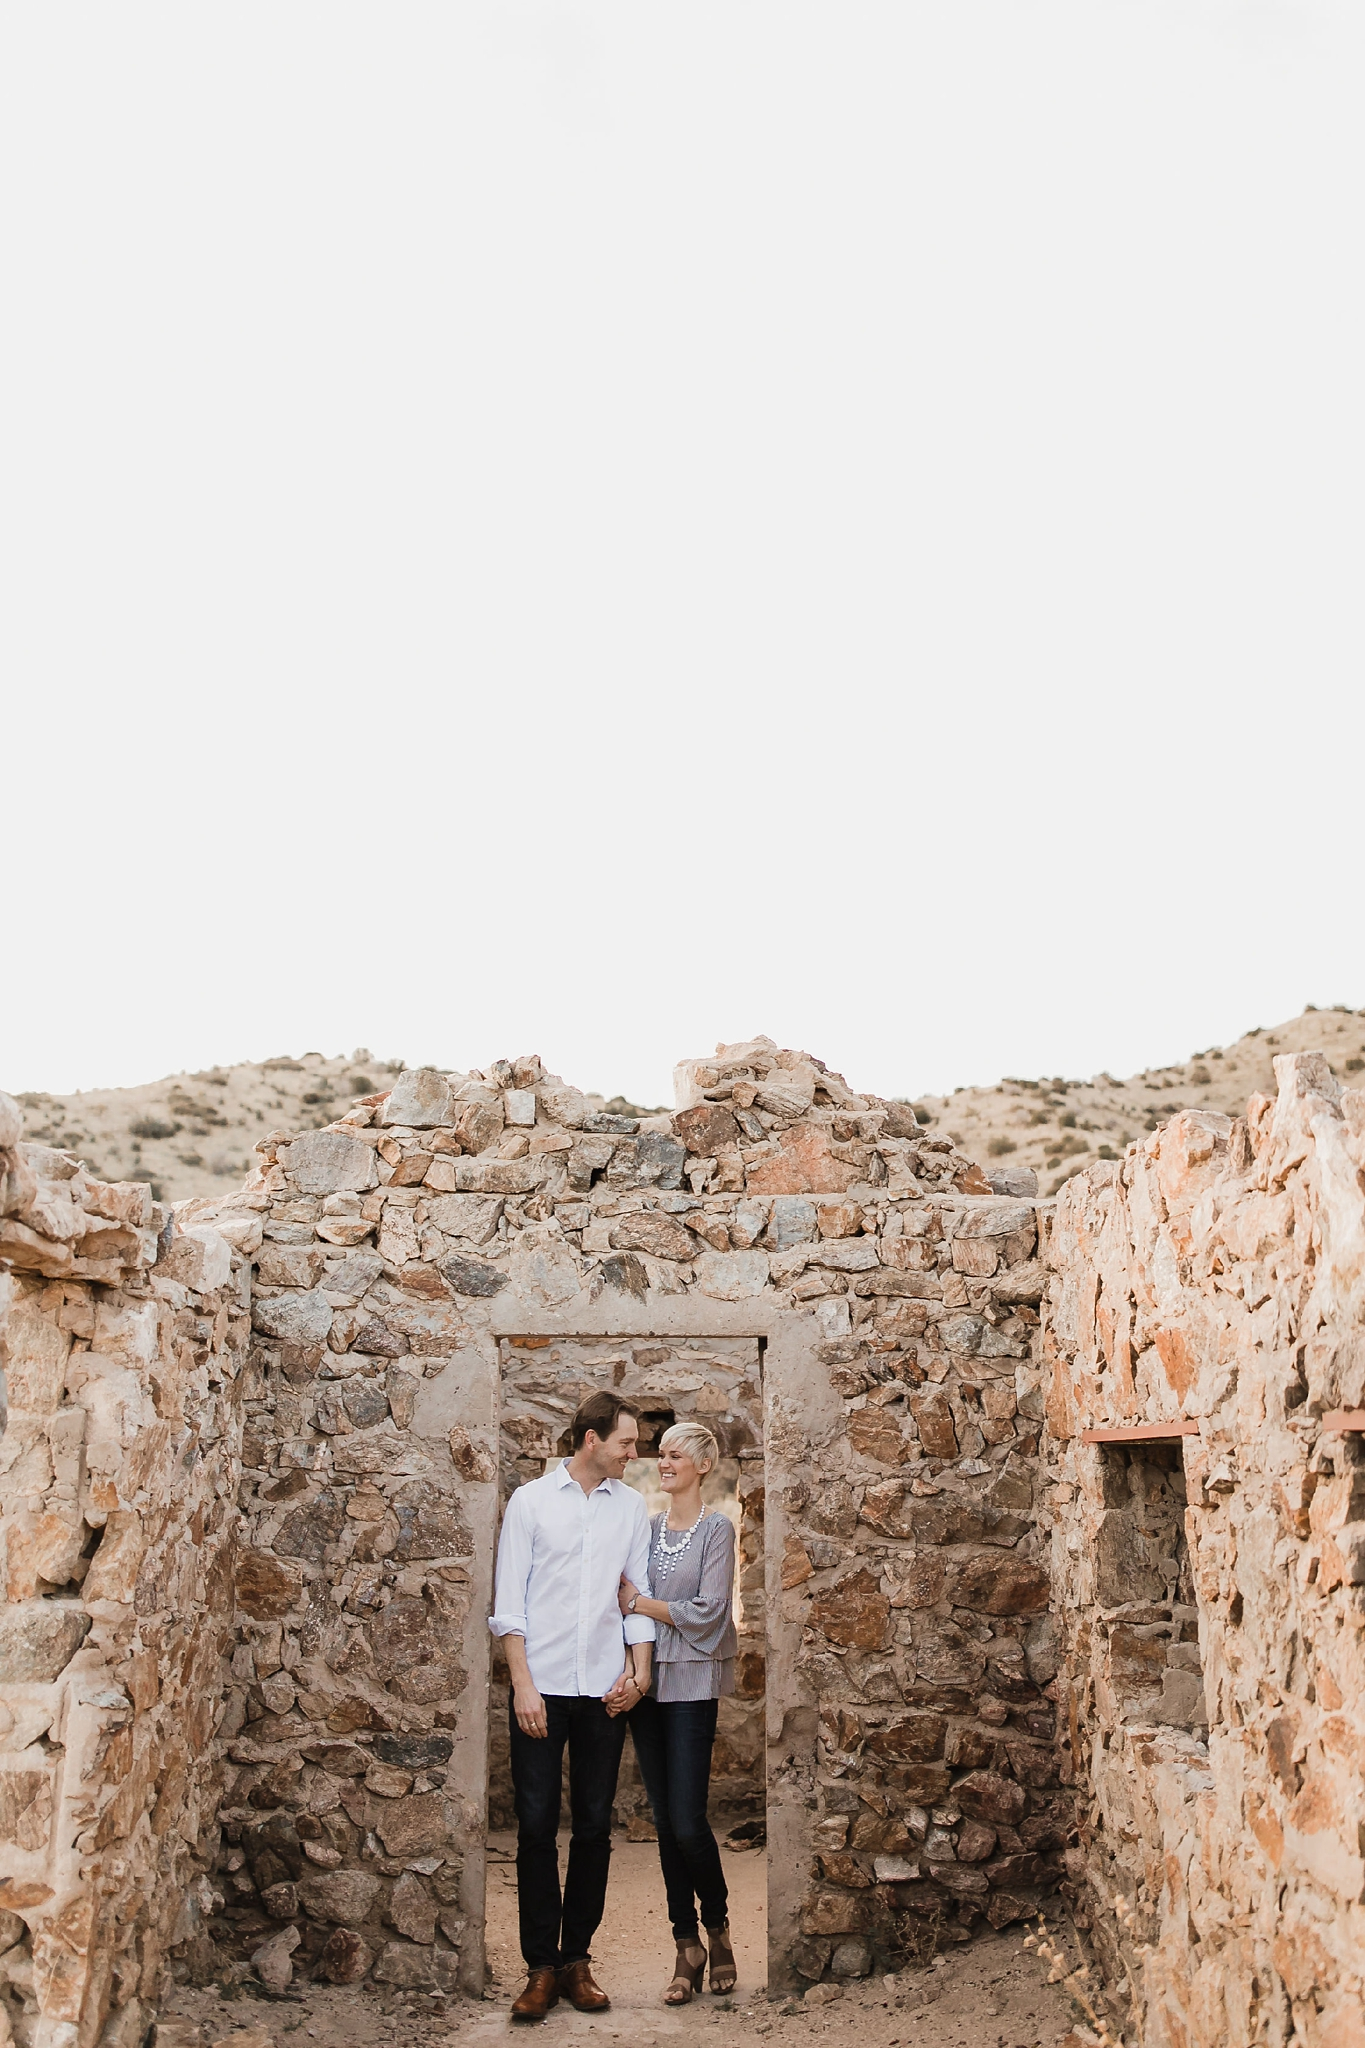 Alicia+lucia+photography+-+albuquerque+wedding+photographer+-+santa+fe+wedding+photography+-+new+mexico+wedding+photographer+-+new+mexico+wedding+-+engagement+-+new+mexico+engagement+-+desert+engagement+-+albuquerque+engagement_0005.jpg